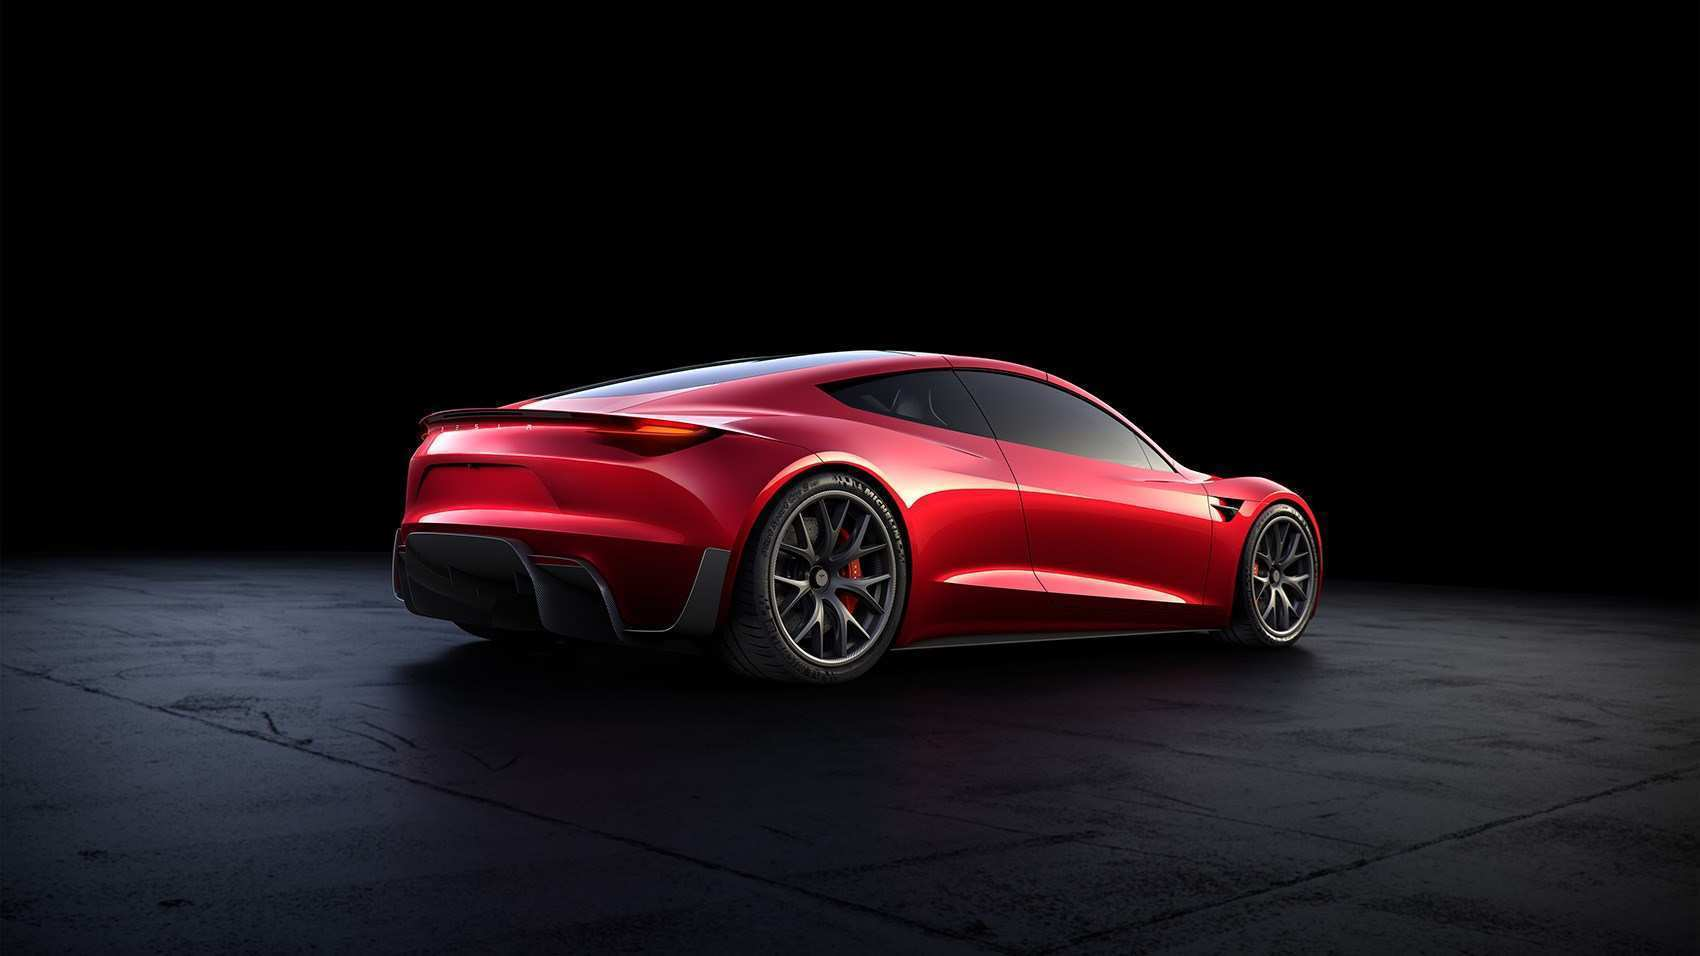 85 The Tesla 2020 Roadster Pre Order Exterior and Interior with Tesla 2020 Roadster Pre Order